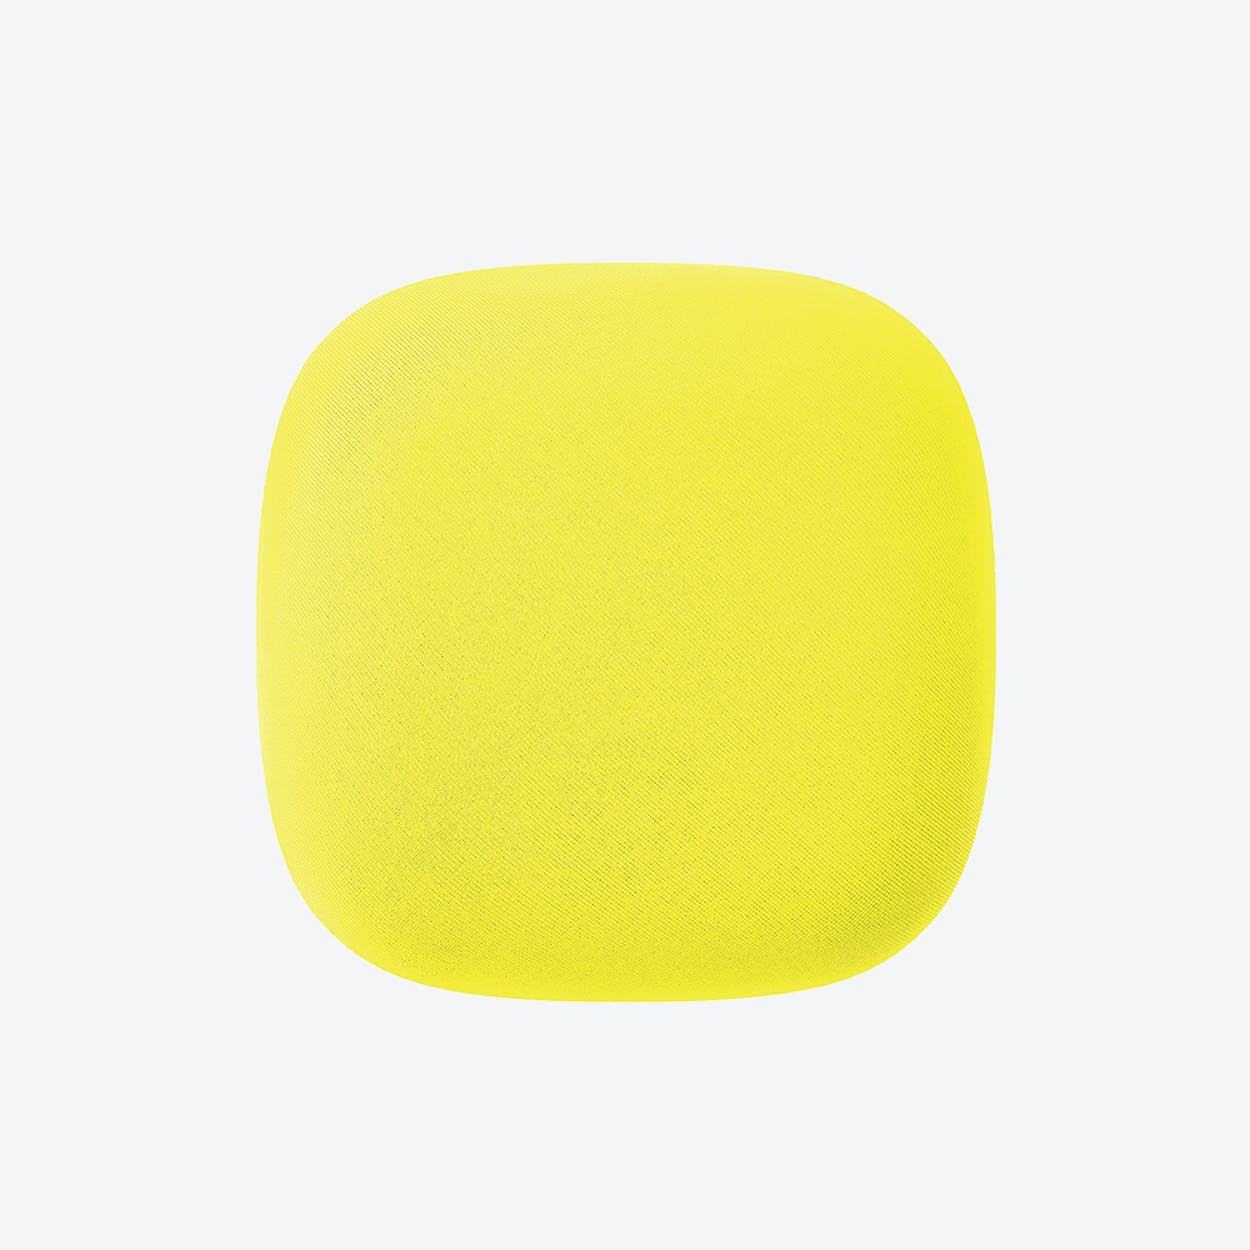 KUPU 10 Smoke Alarm in Yellow